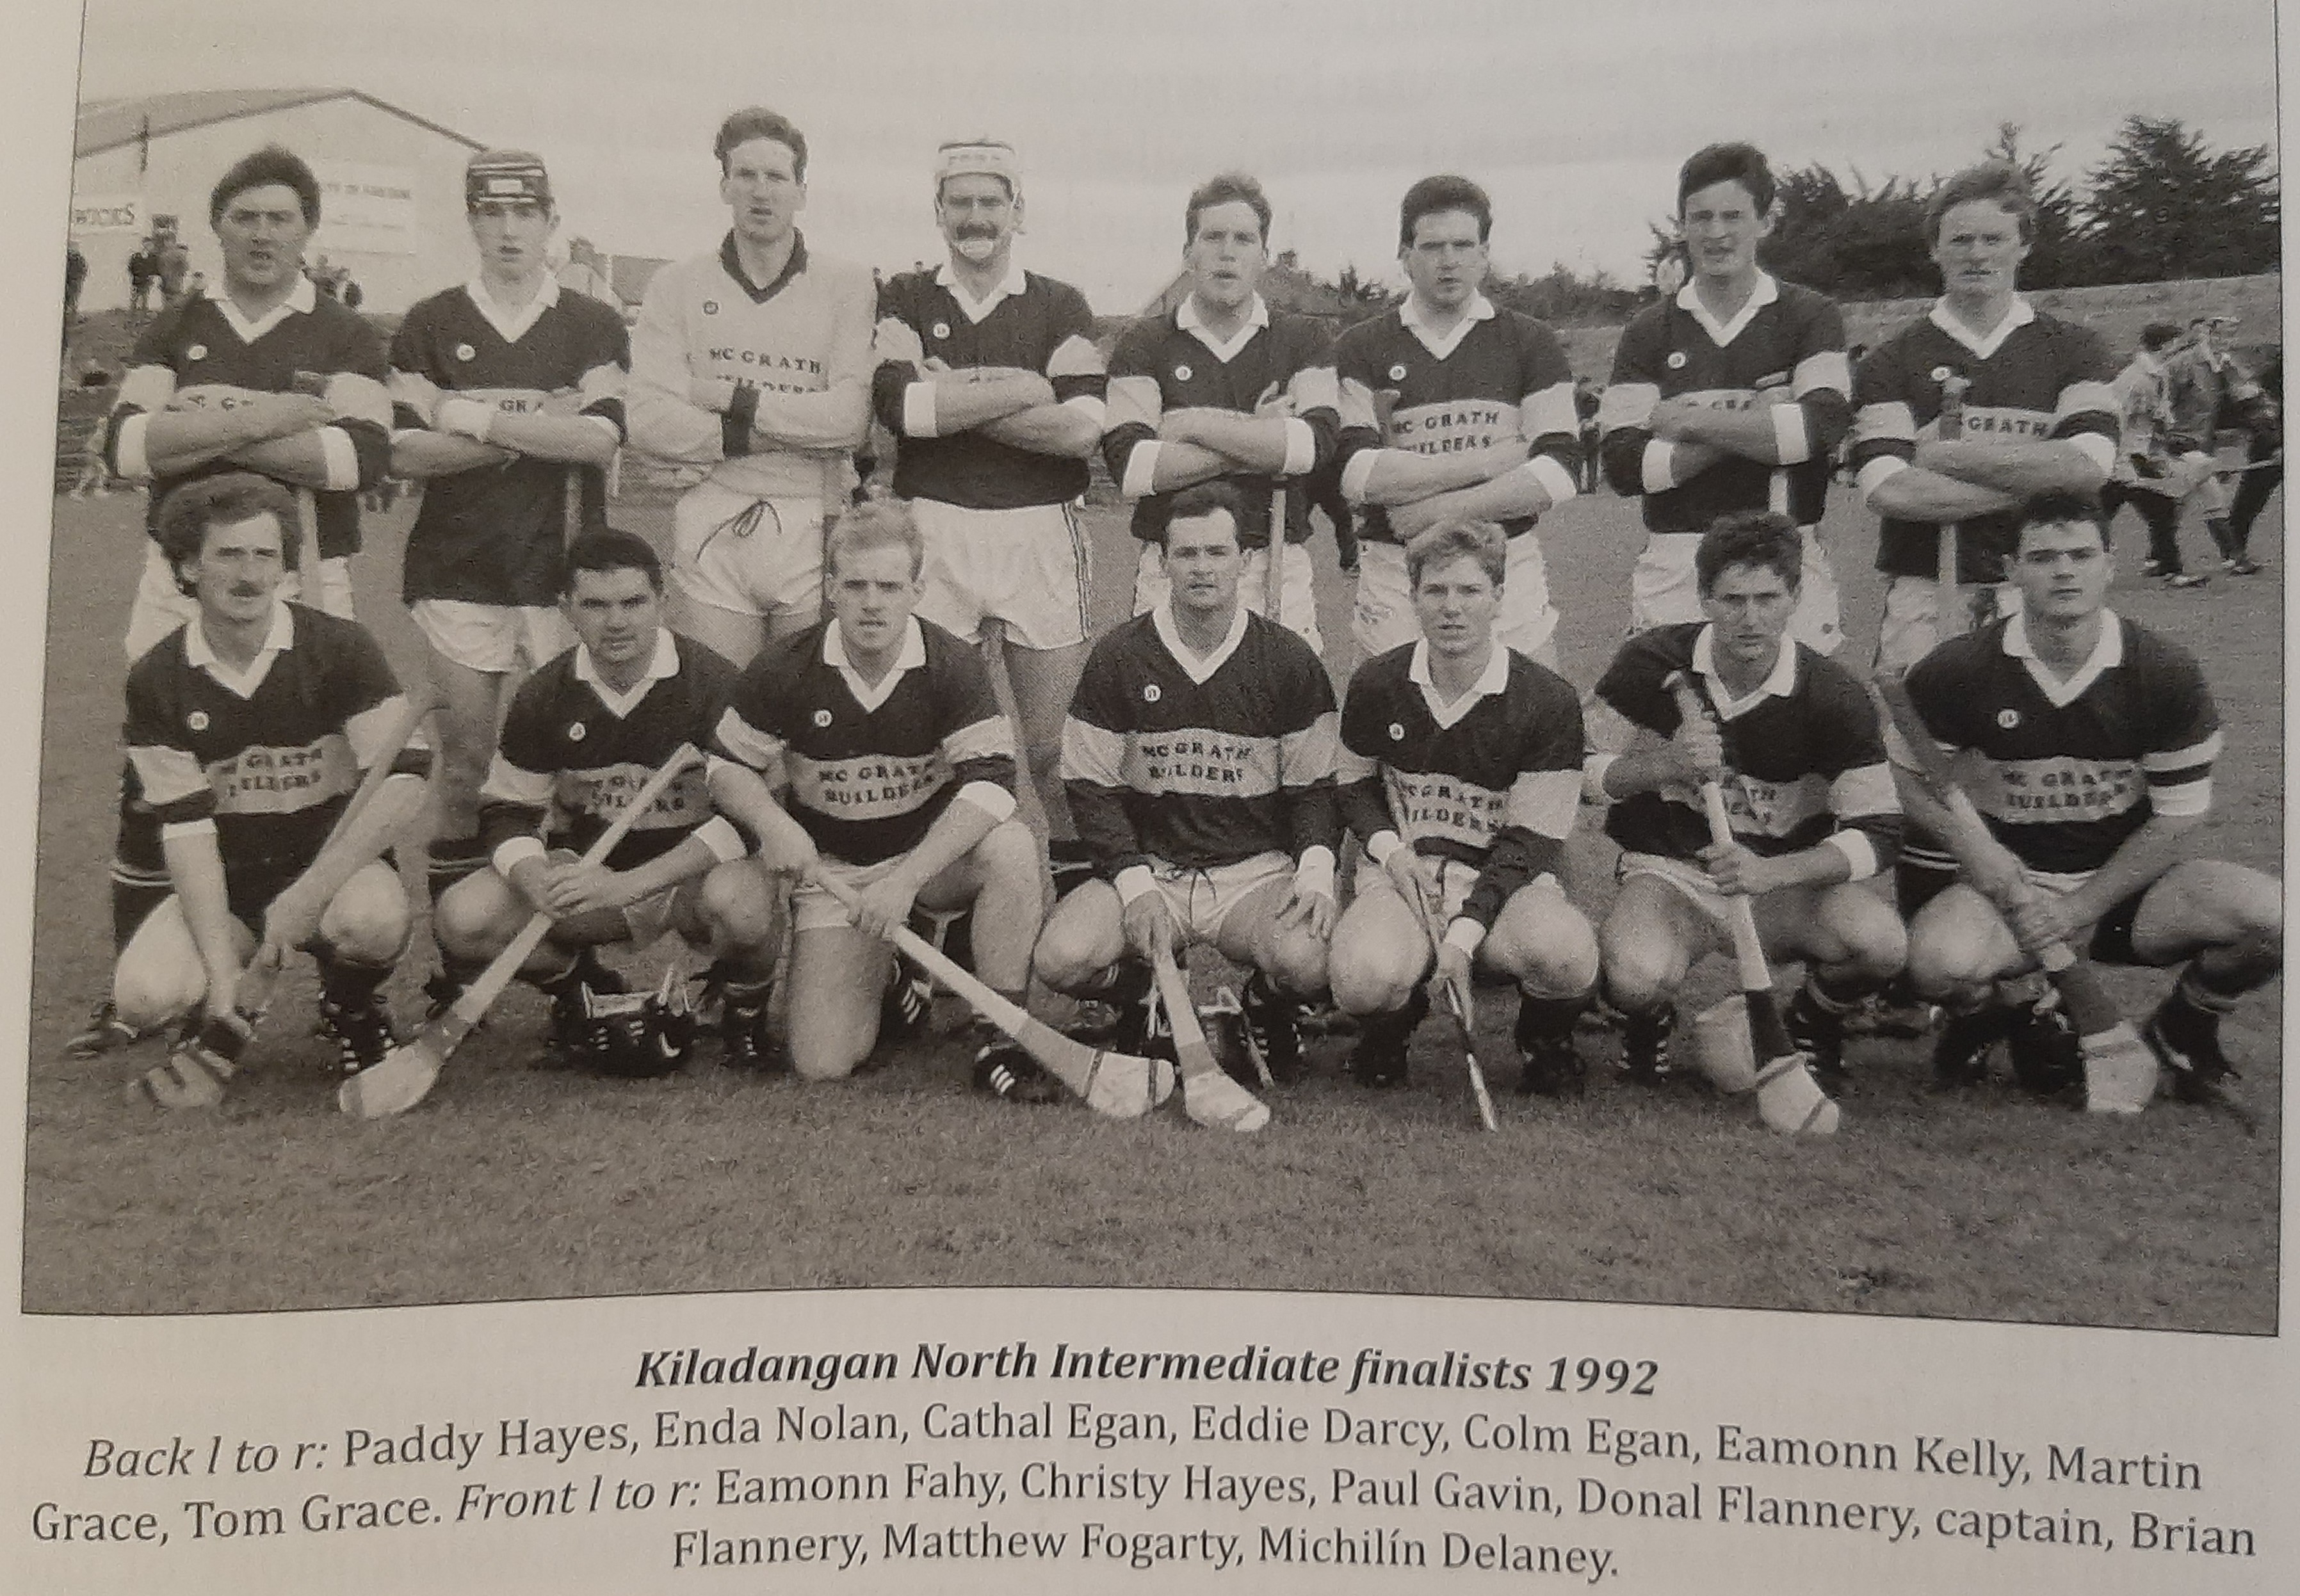 Colm pictured 5th from left in the back row ahead of the 1992 North Intermediate Final